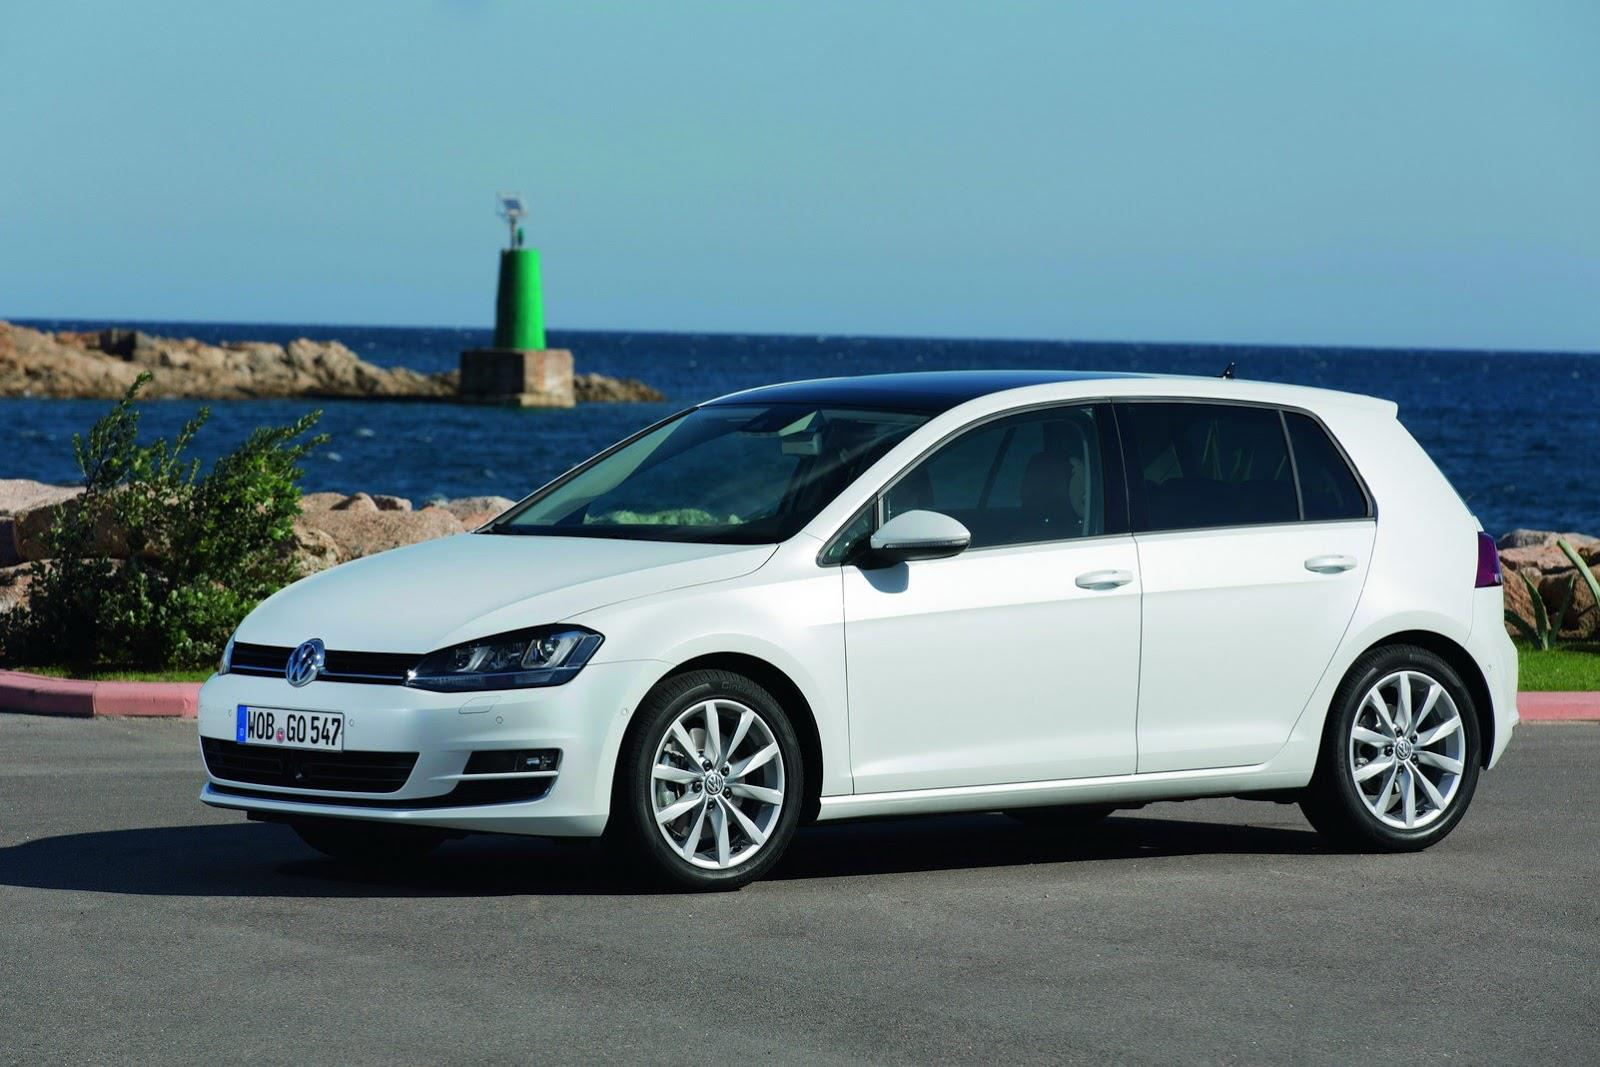 Vw golf sv (sportsvan) 2014 review | auto express, Practical and ...